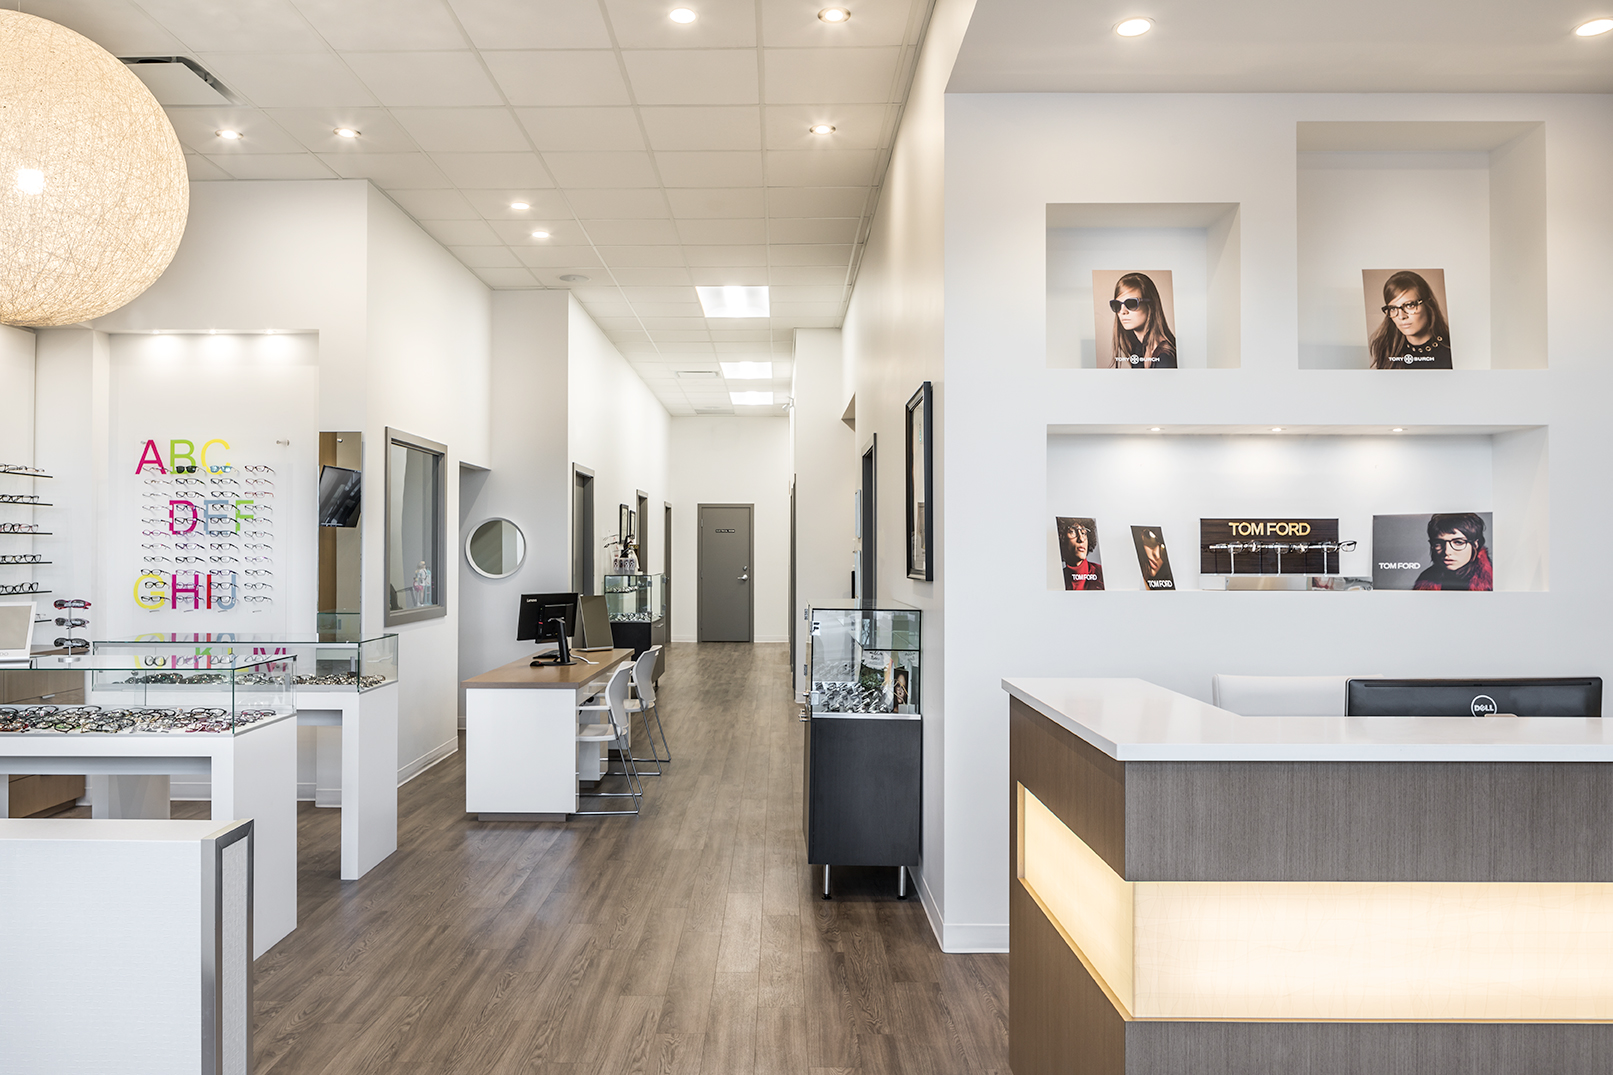 Arborlea Developments - Sullivan Heights Dental Arborlea Developments - Willoughby Doctors of Optometry